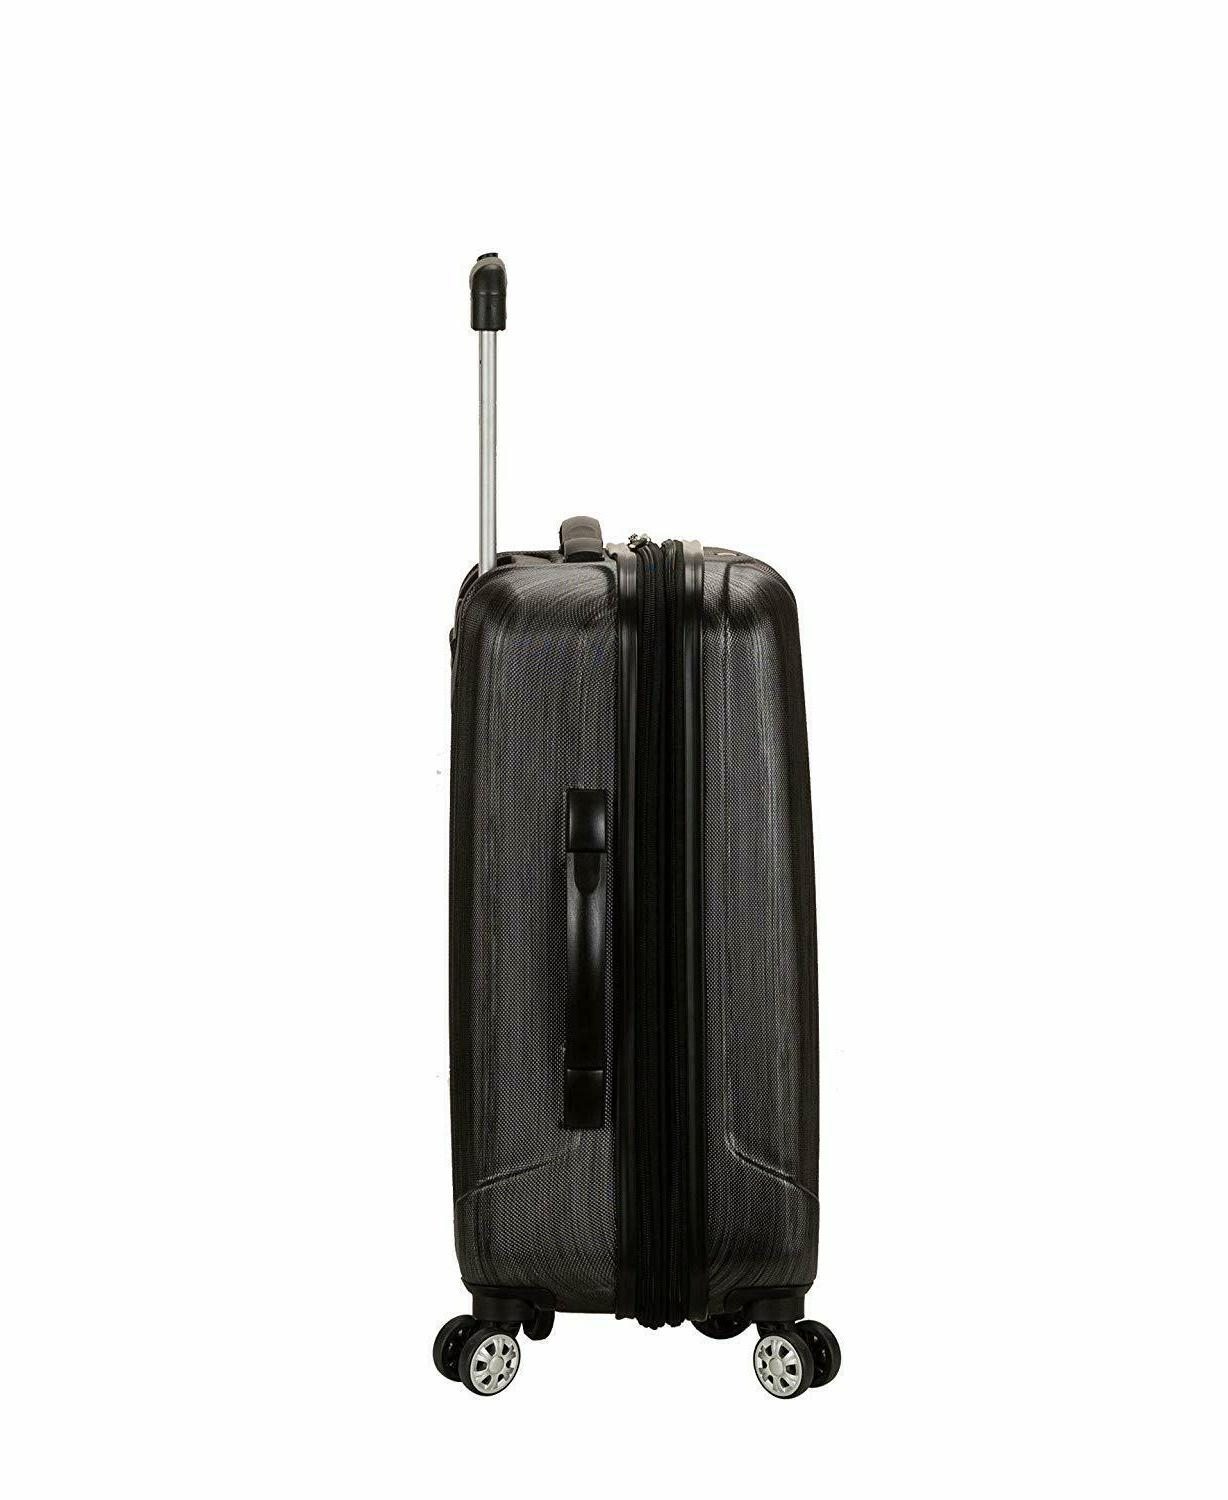 Rockland Expandable ABS Carry Luggage Metallic